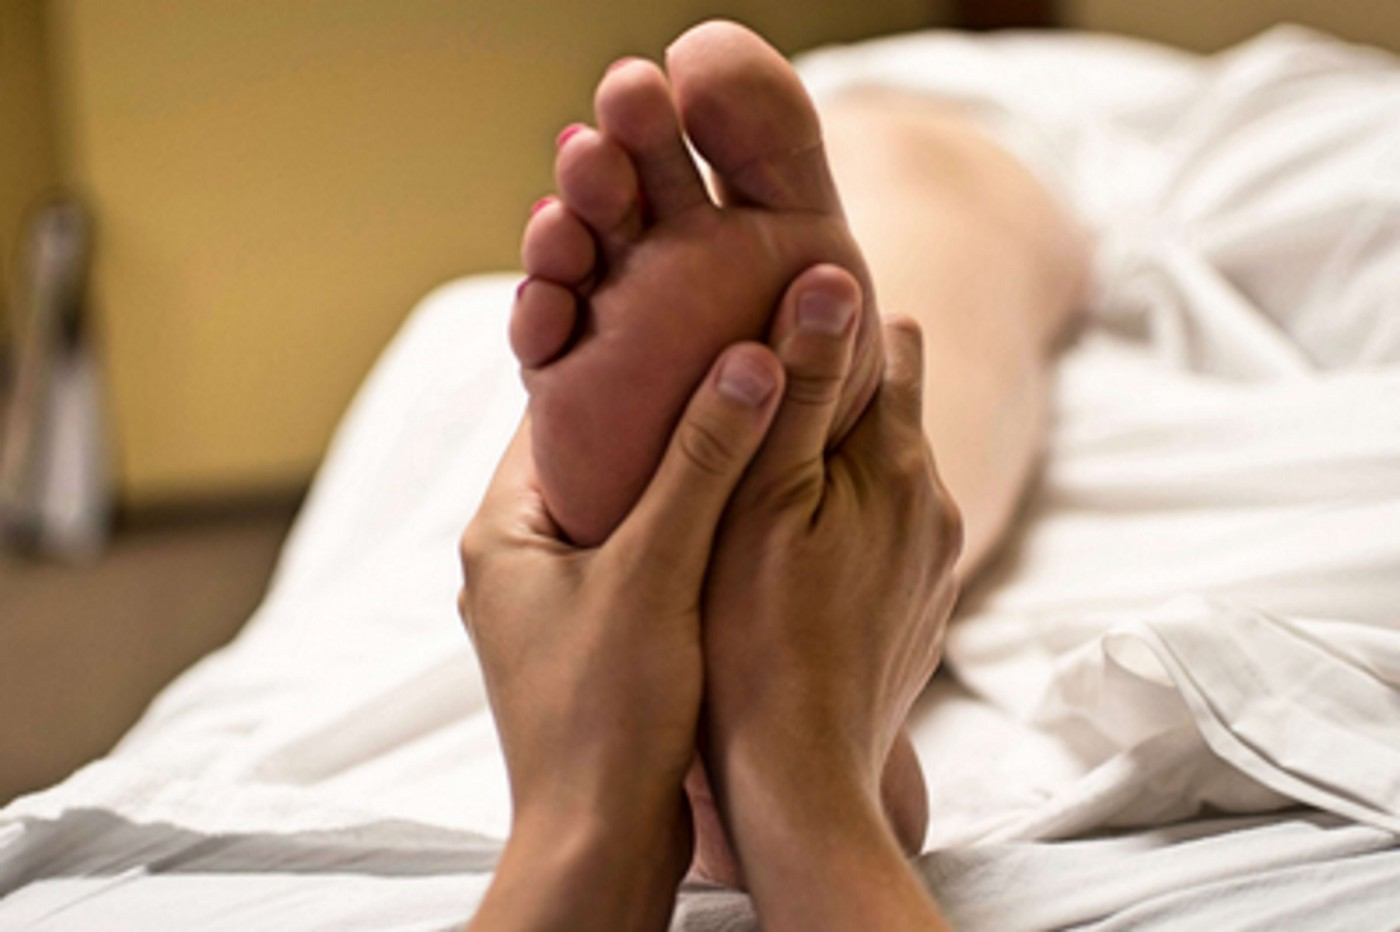 Photograph of foot with hands giving massage